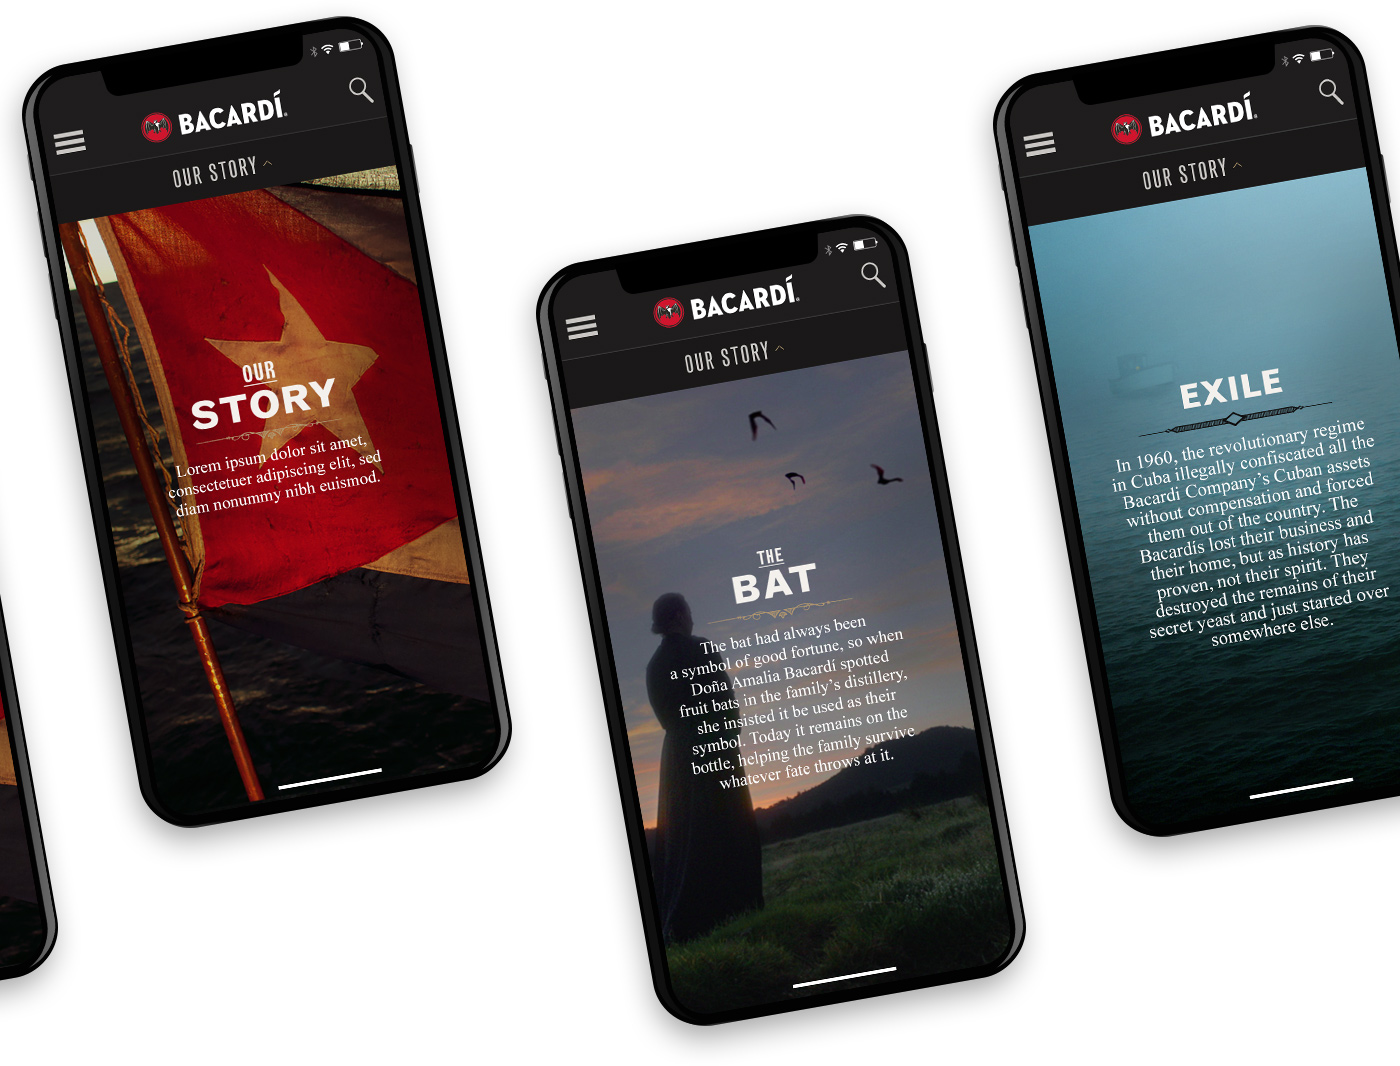 Mobile screens showing the Bacardi Craft designs